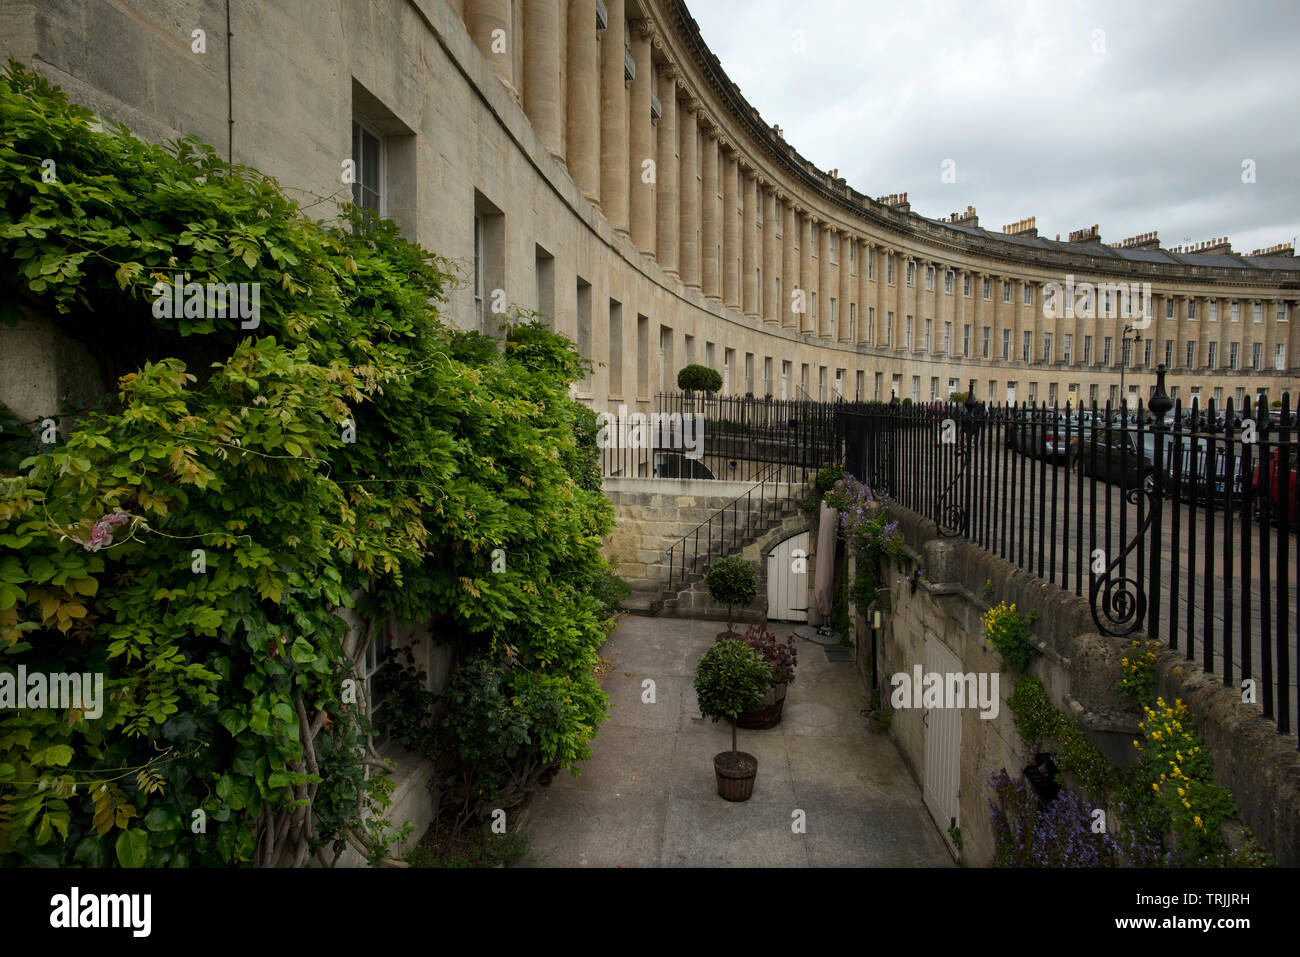 Bath Somerset England UK. June 2019 The Royal Crescent. The Royal Crescent is a row of 30 terraced houses laid out in a sweeping crescent in the city Stock Photo